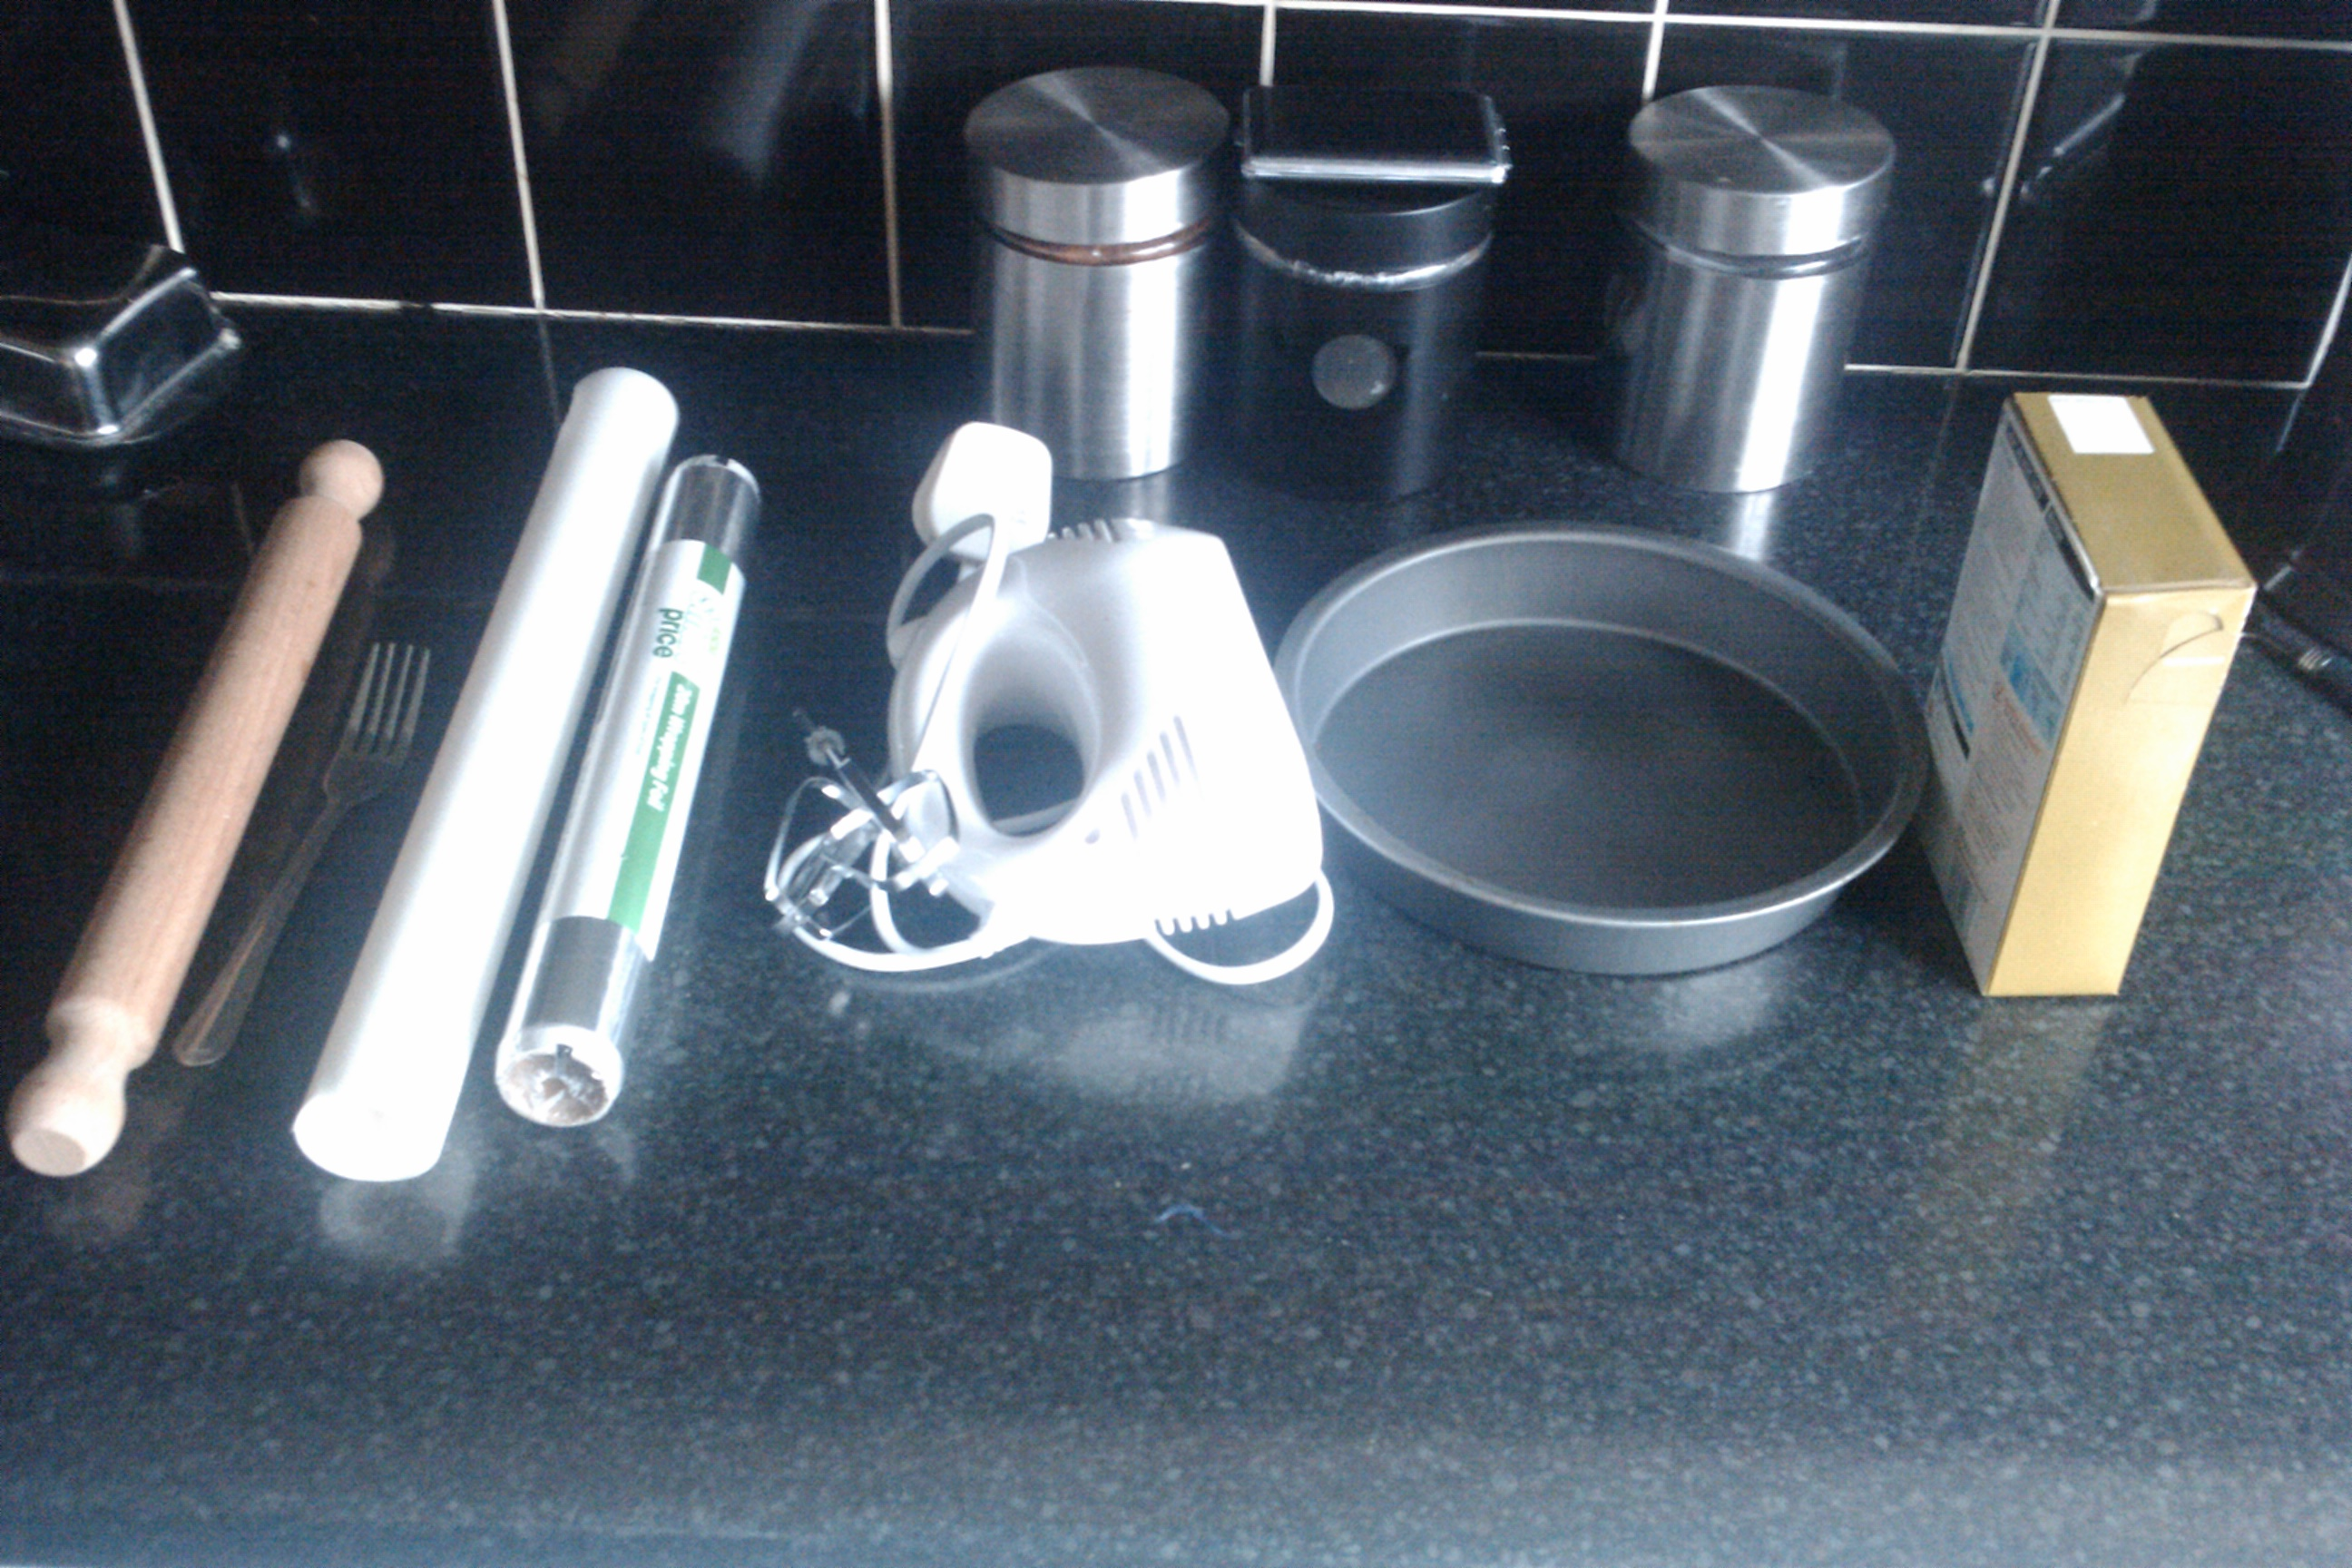 Picture of Ingredients and Equipment